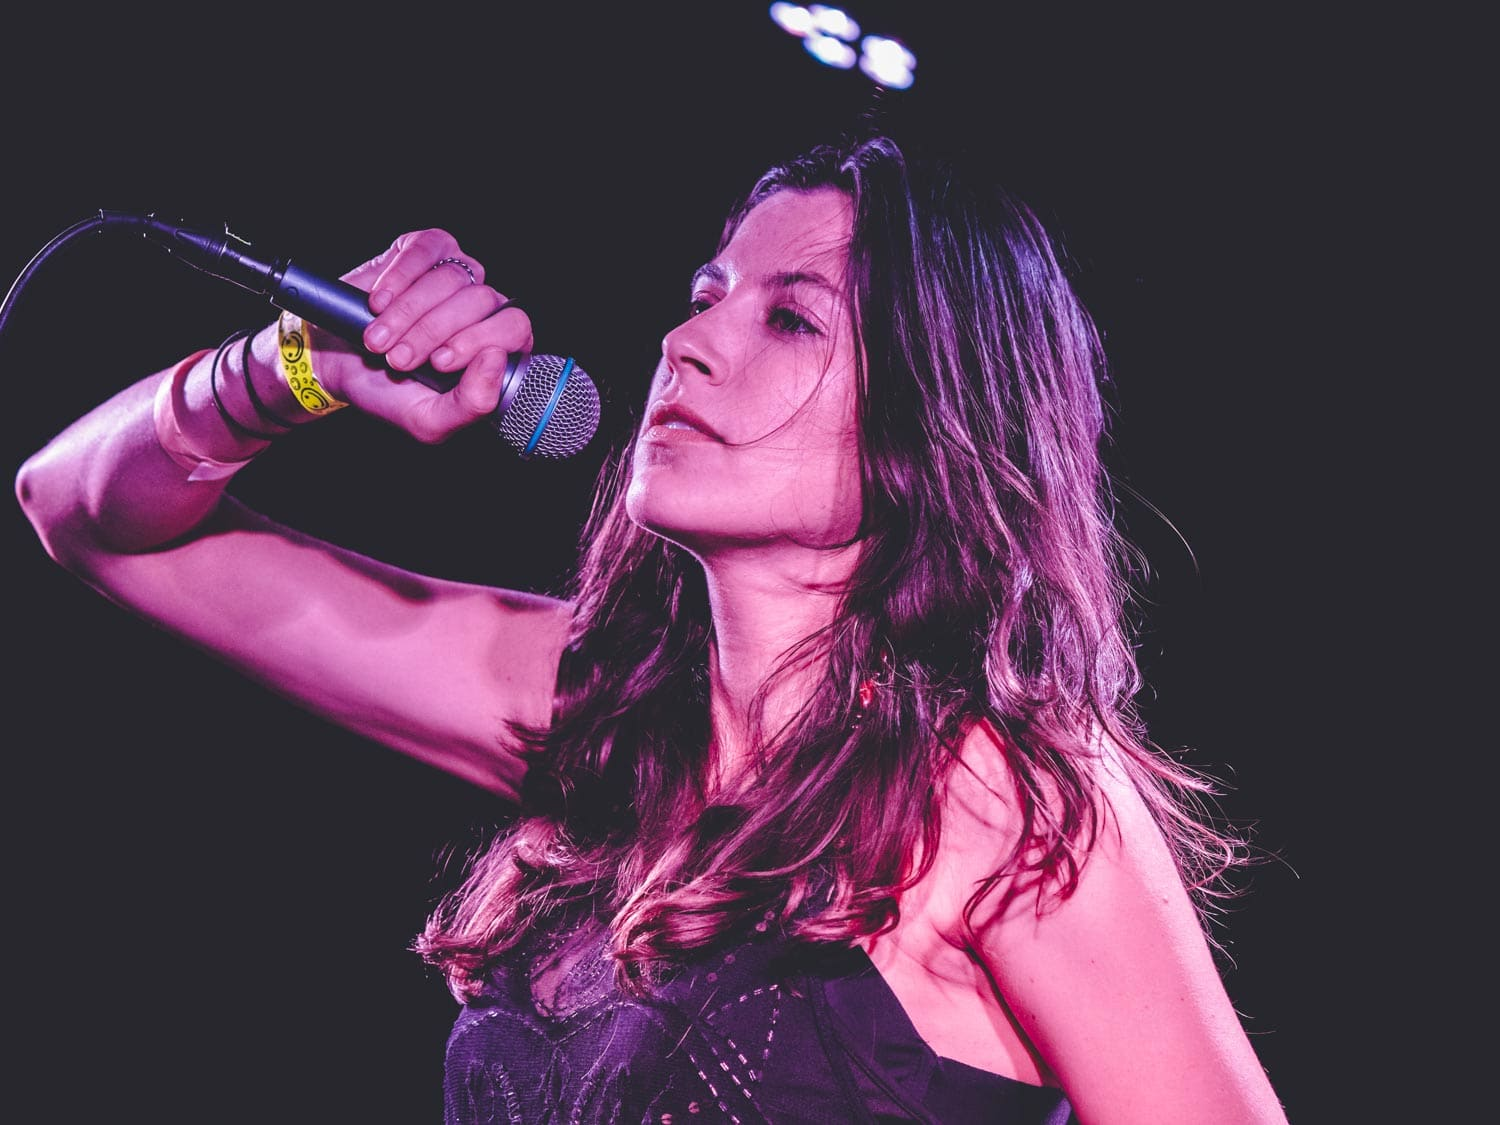 Katie Toupin at Entry 8.28.21